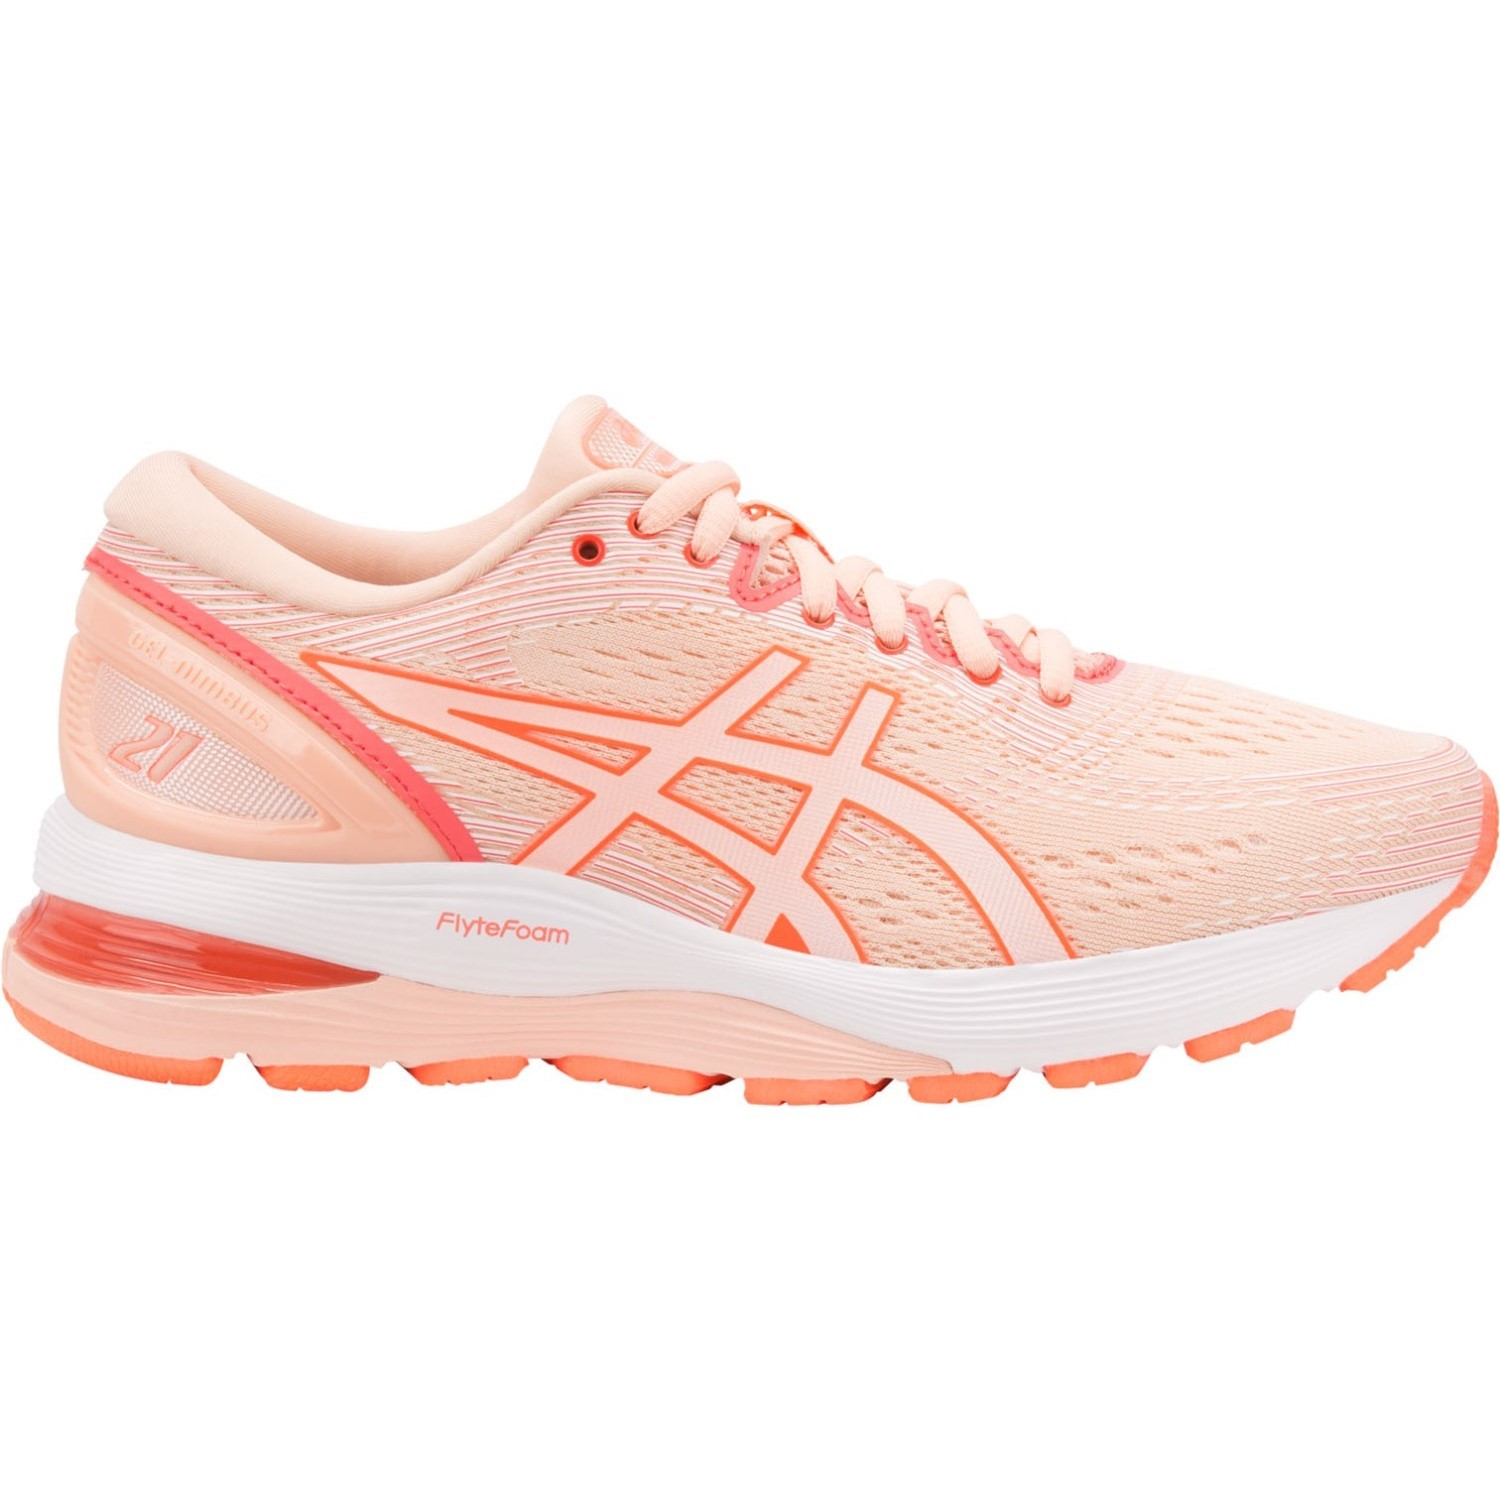 new style ec30c eafdf Asics Gel Nimbus 21 - Womens Running Shoes - Baked Pink White